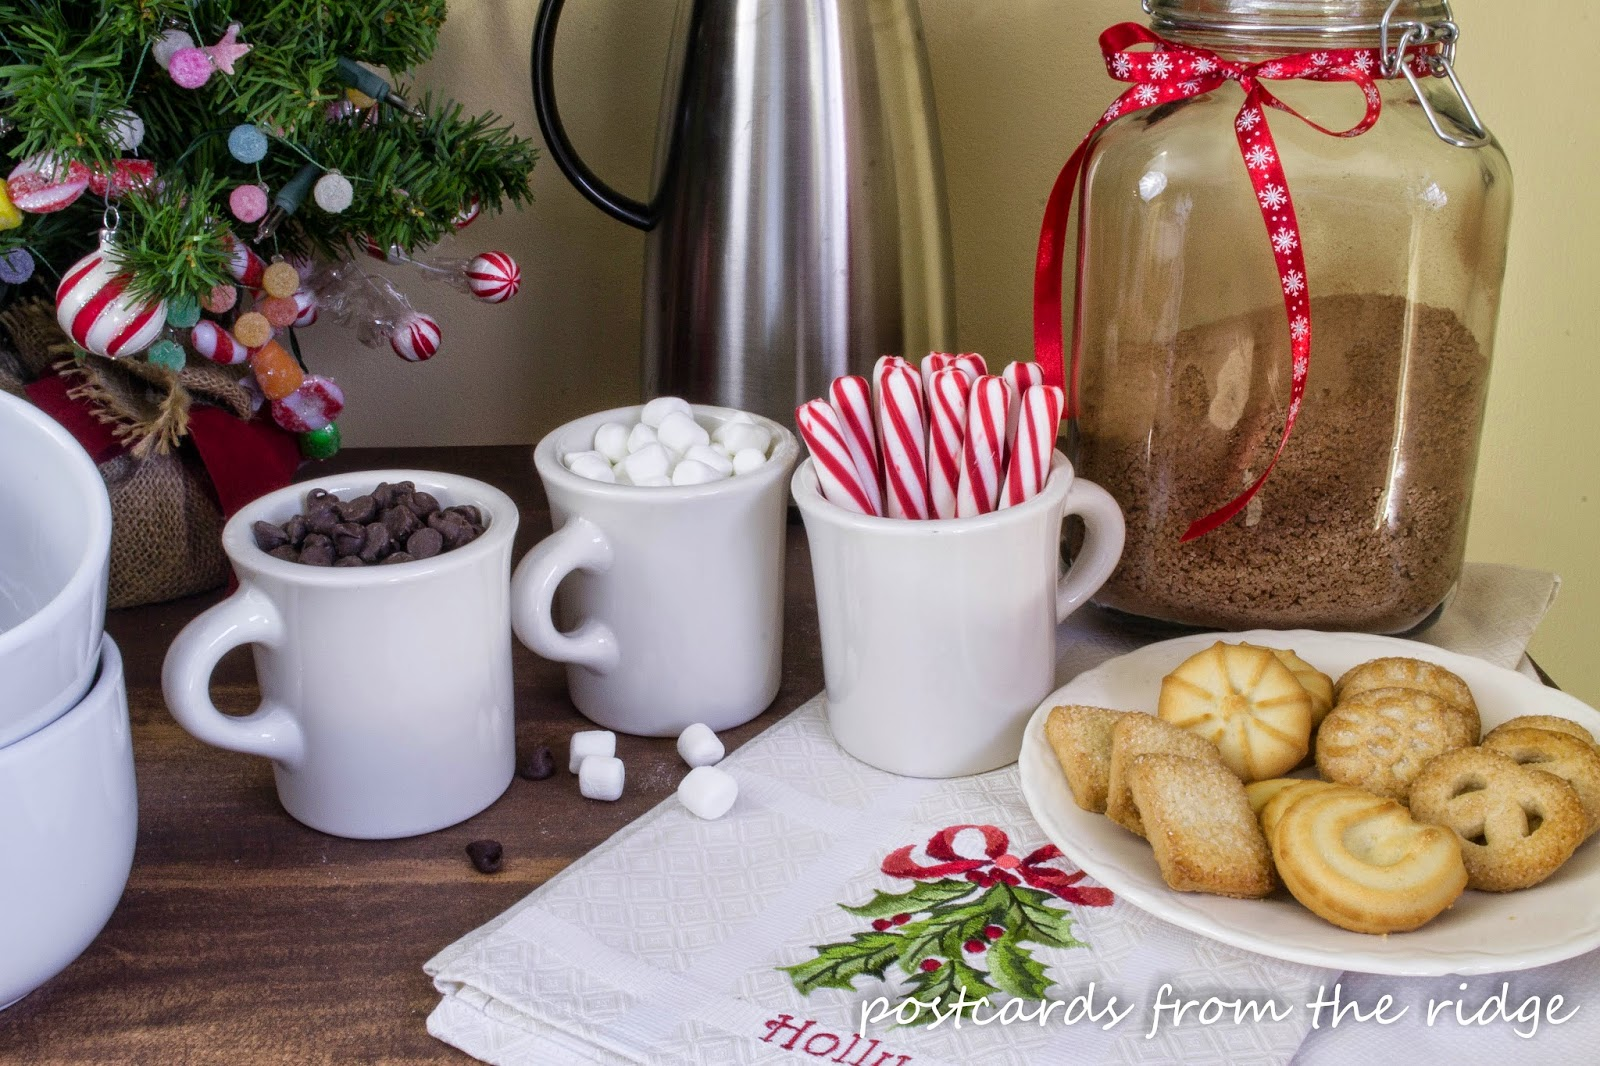 Such a pretty hot cocoa bar using vintage Homer Laughlin mugs for fun additions. Love the embroidered linen too.